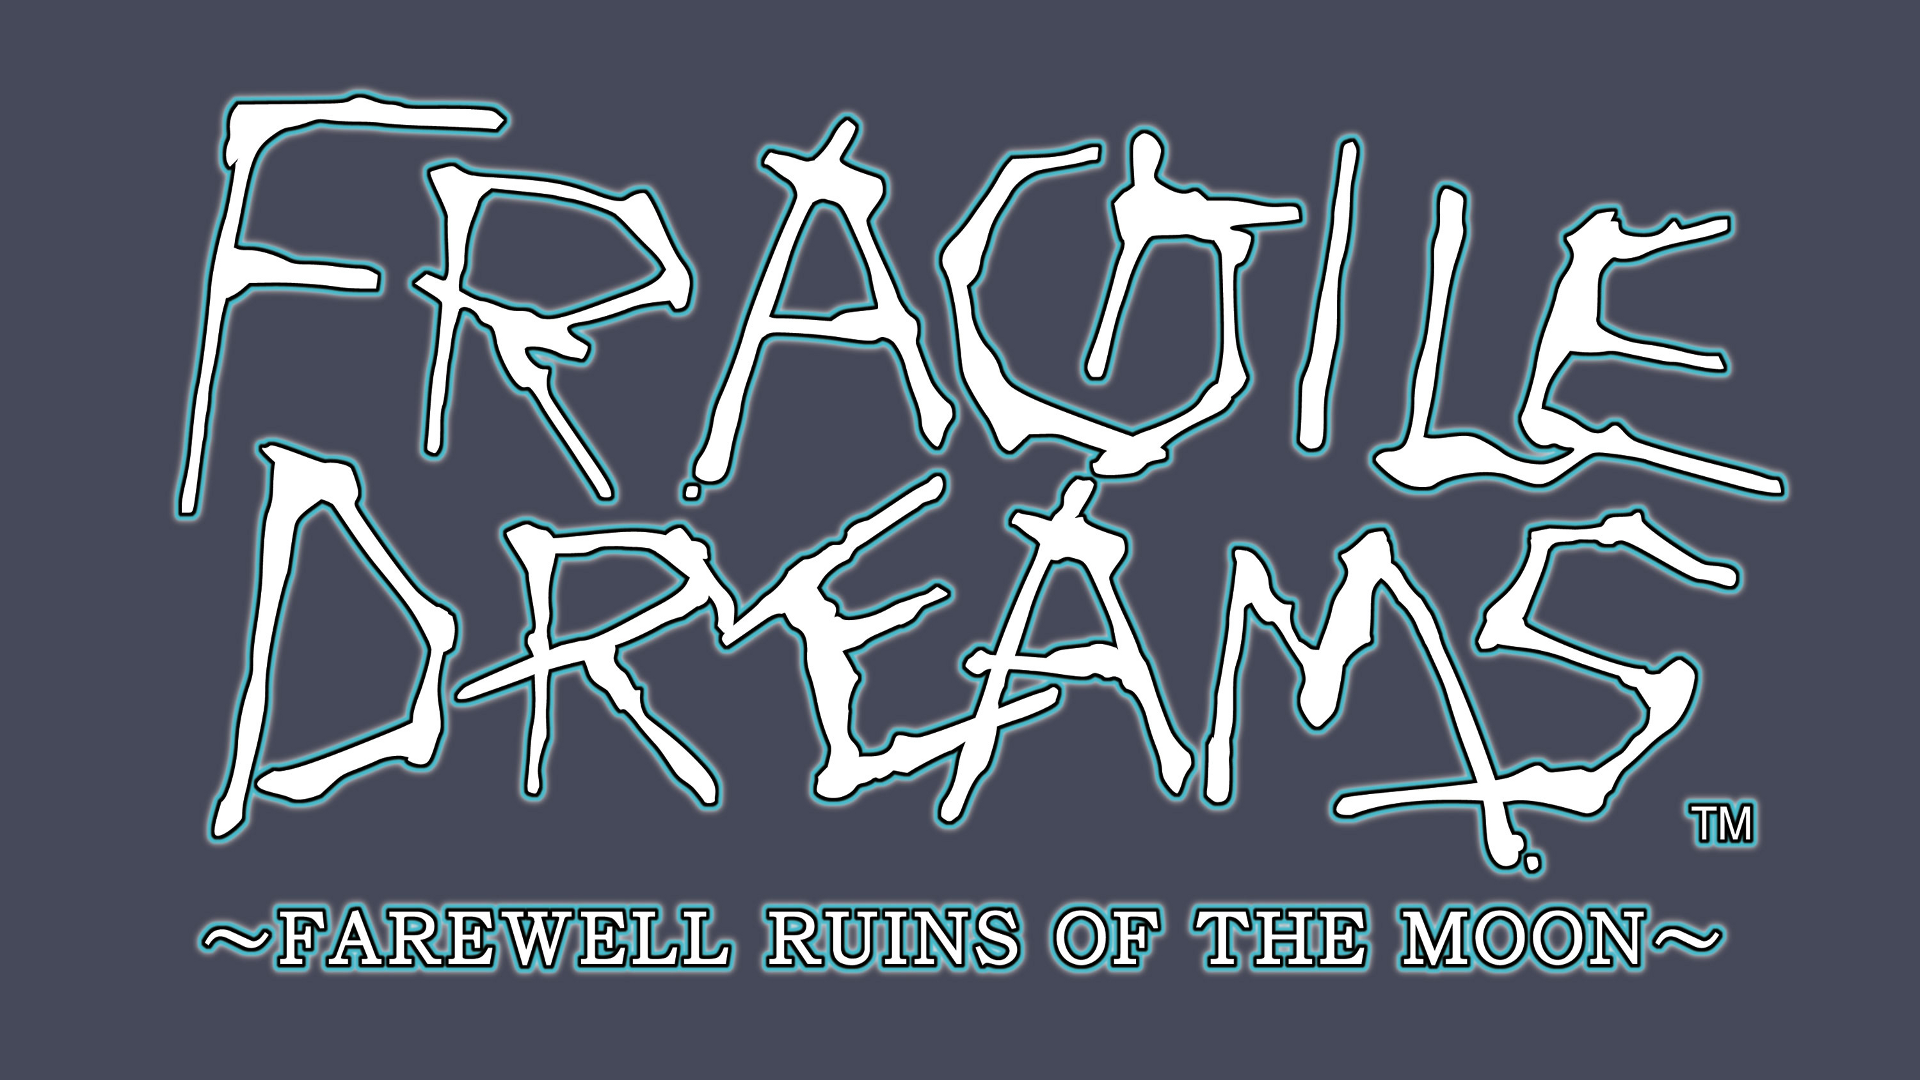 Fragile Dreams: Farewell Ruins of the Moon Logo